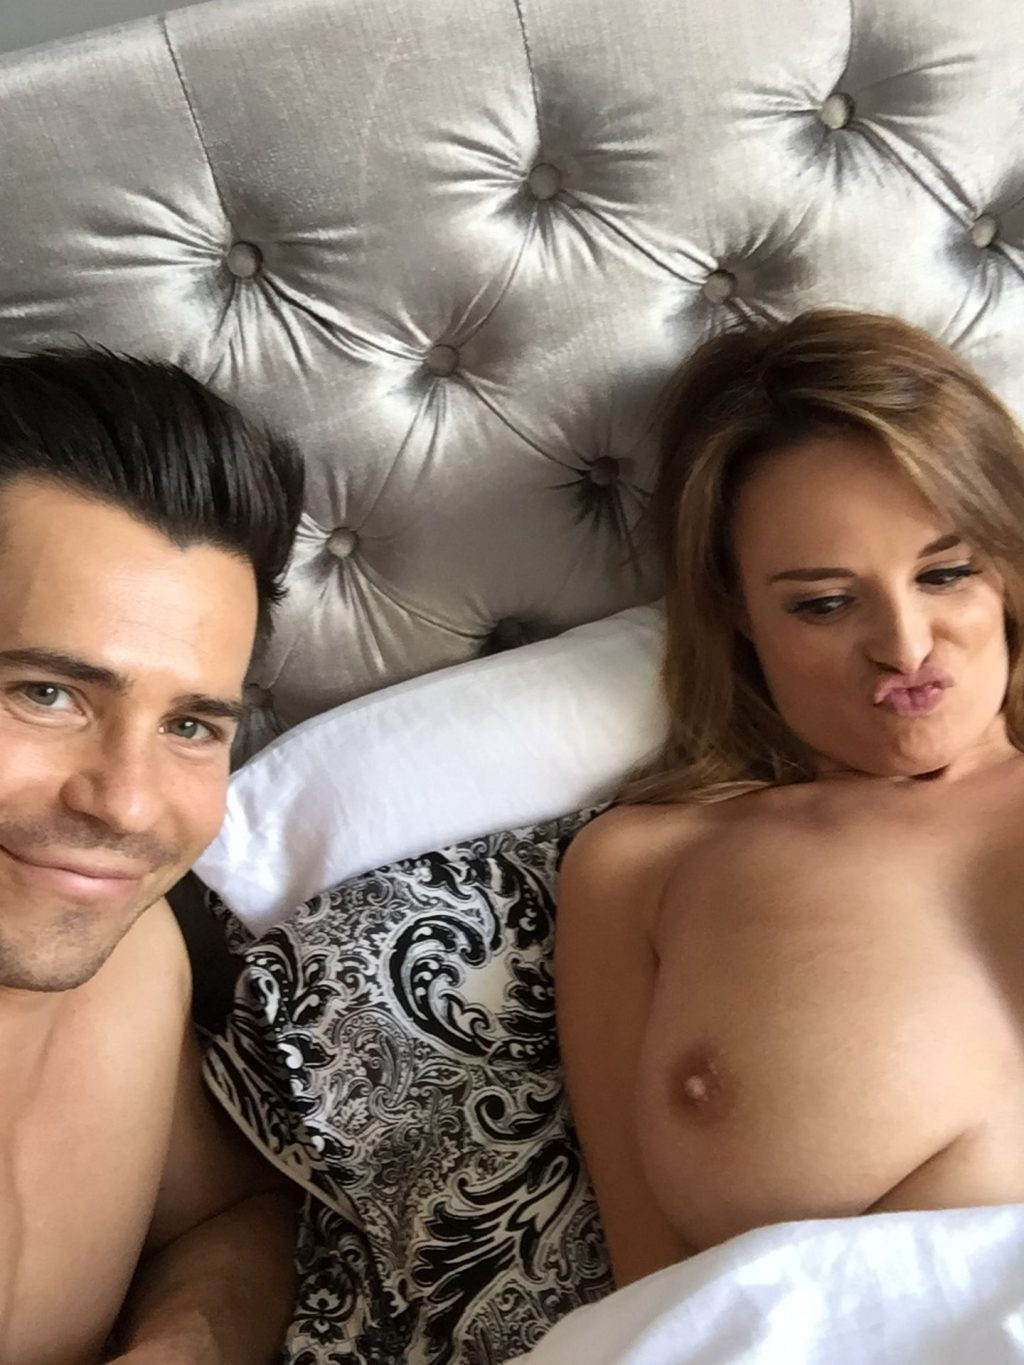 Rhian Sugden Nude Leaked The Fappening (2 Hot Photos)